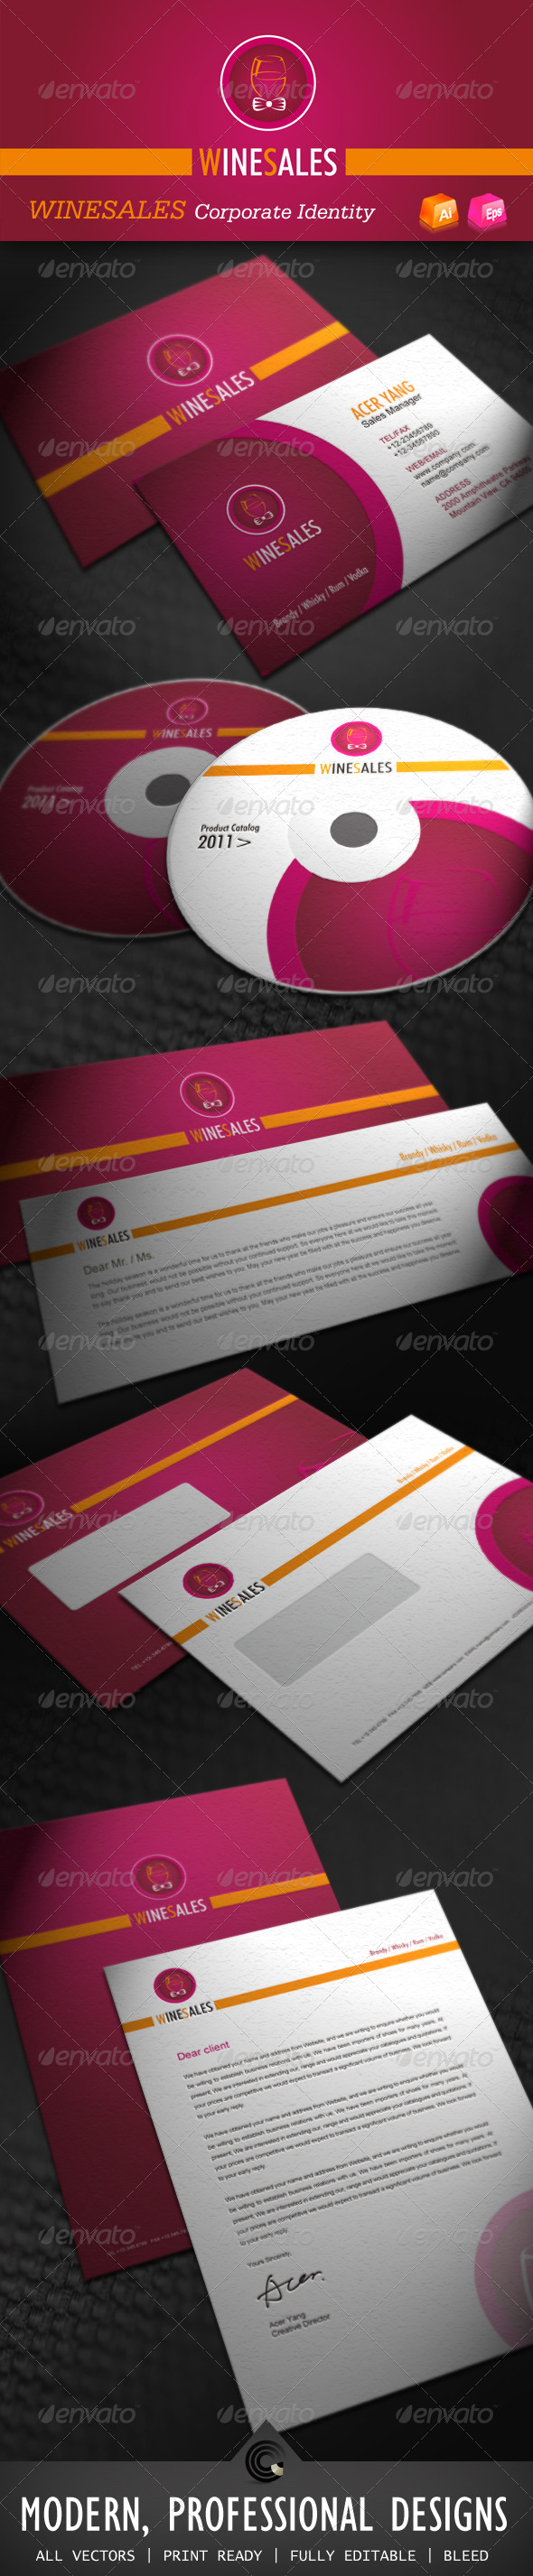 Wine Sales Corporate Identity - Stationery Print Templates